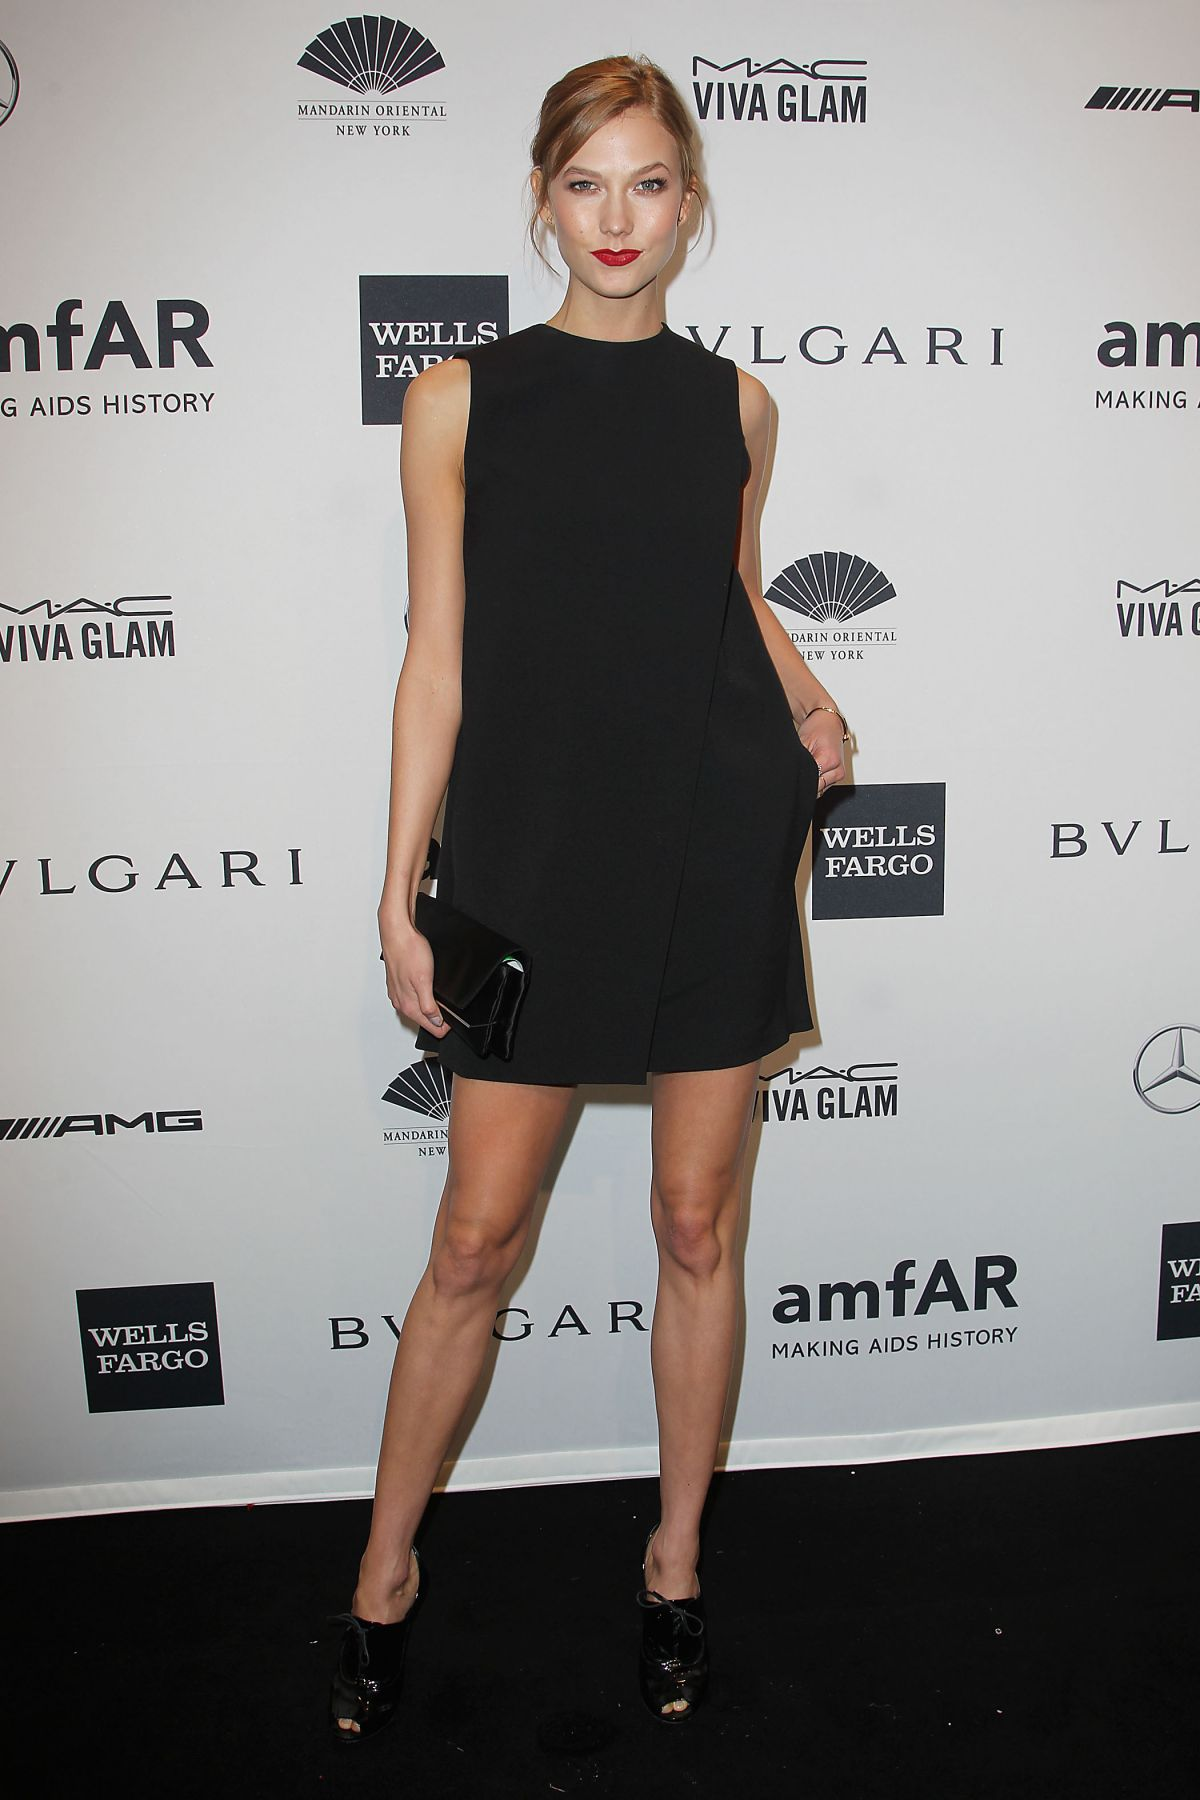 KARLIE KLOSS at 2014 AMFAR Gala in New York